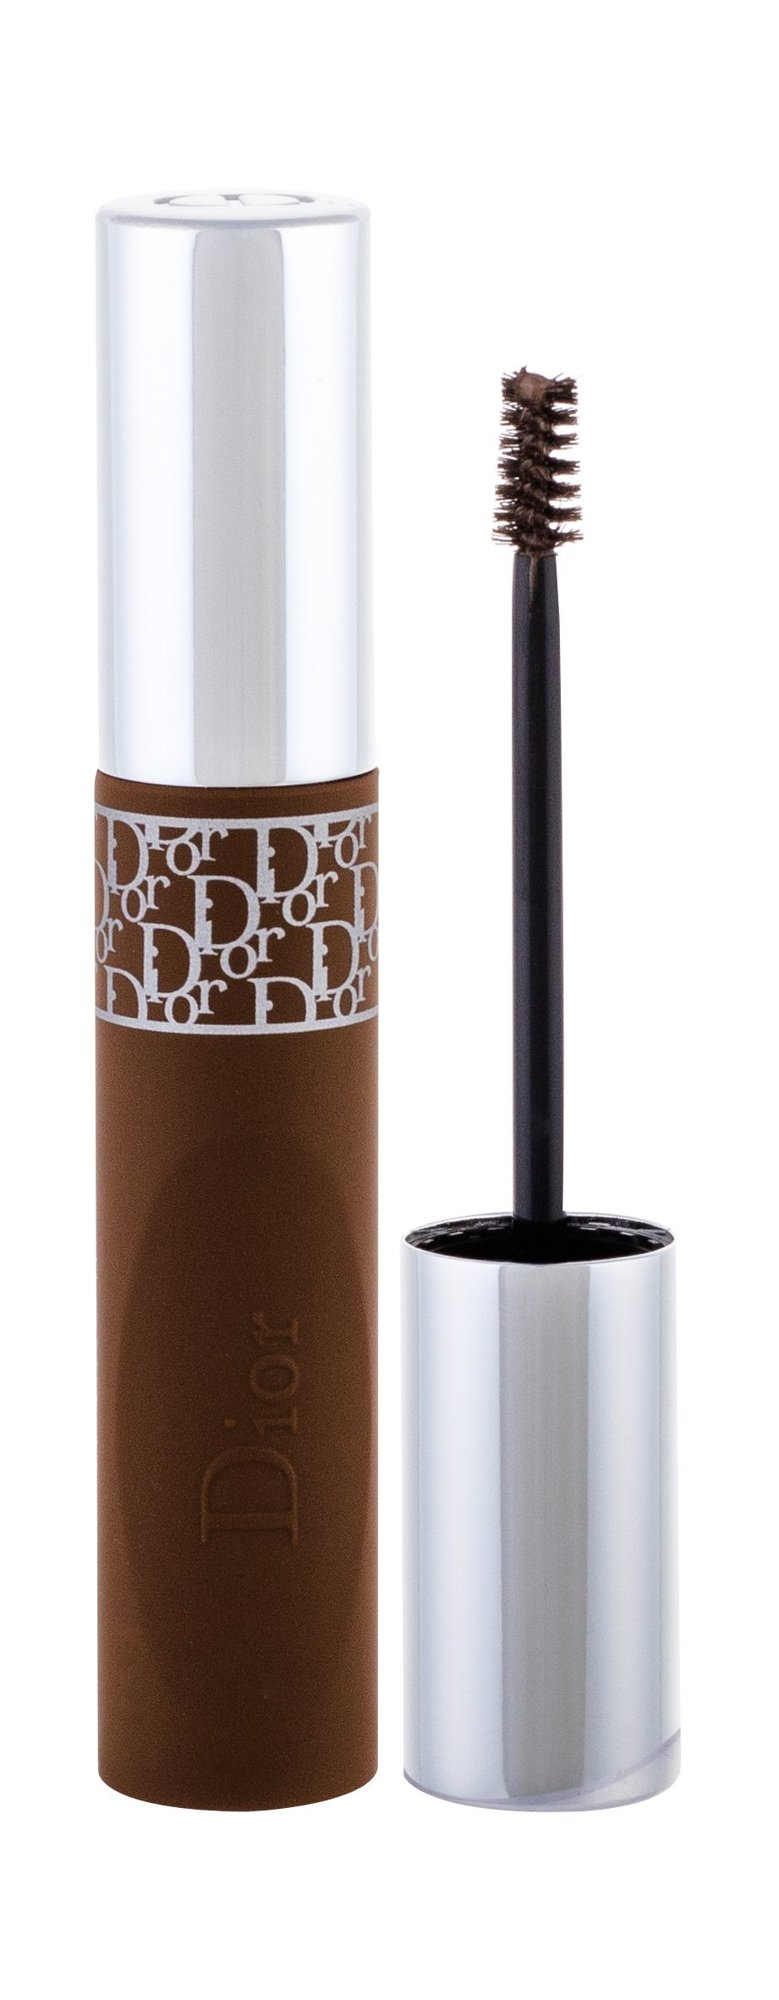 Christian Dior Diorshow Pump´N´ Brow Waterproof (Řasenka na obočí, W, 5 ml)